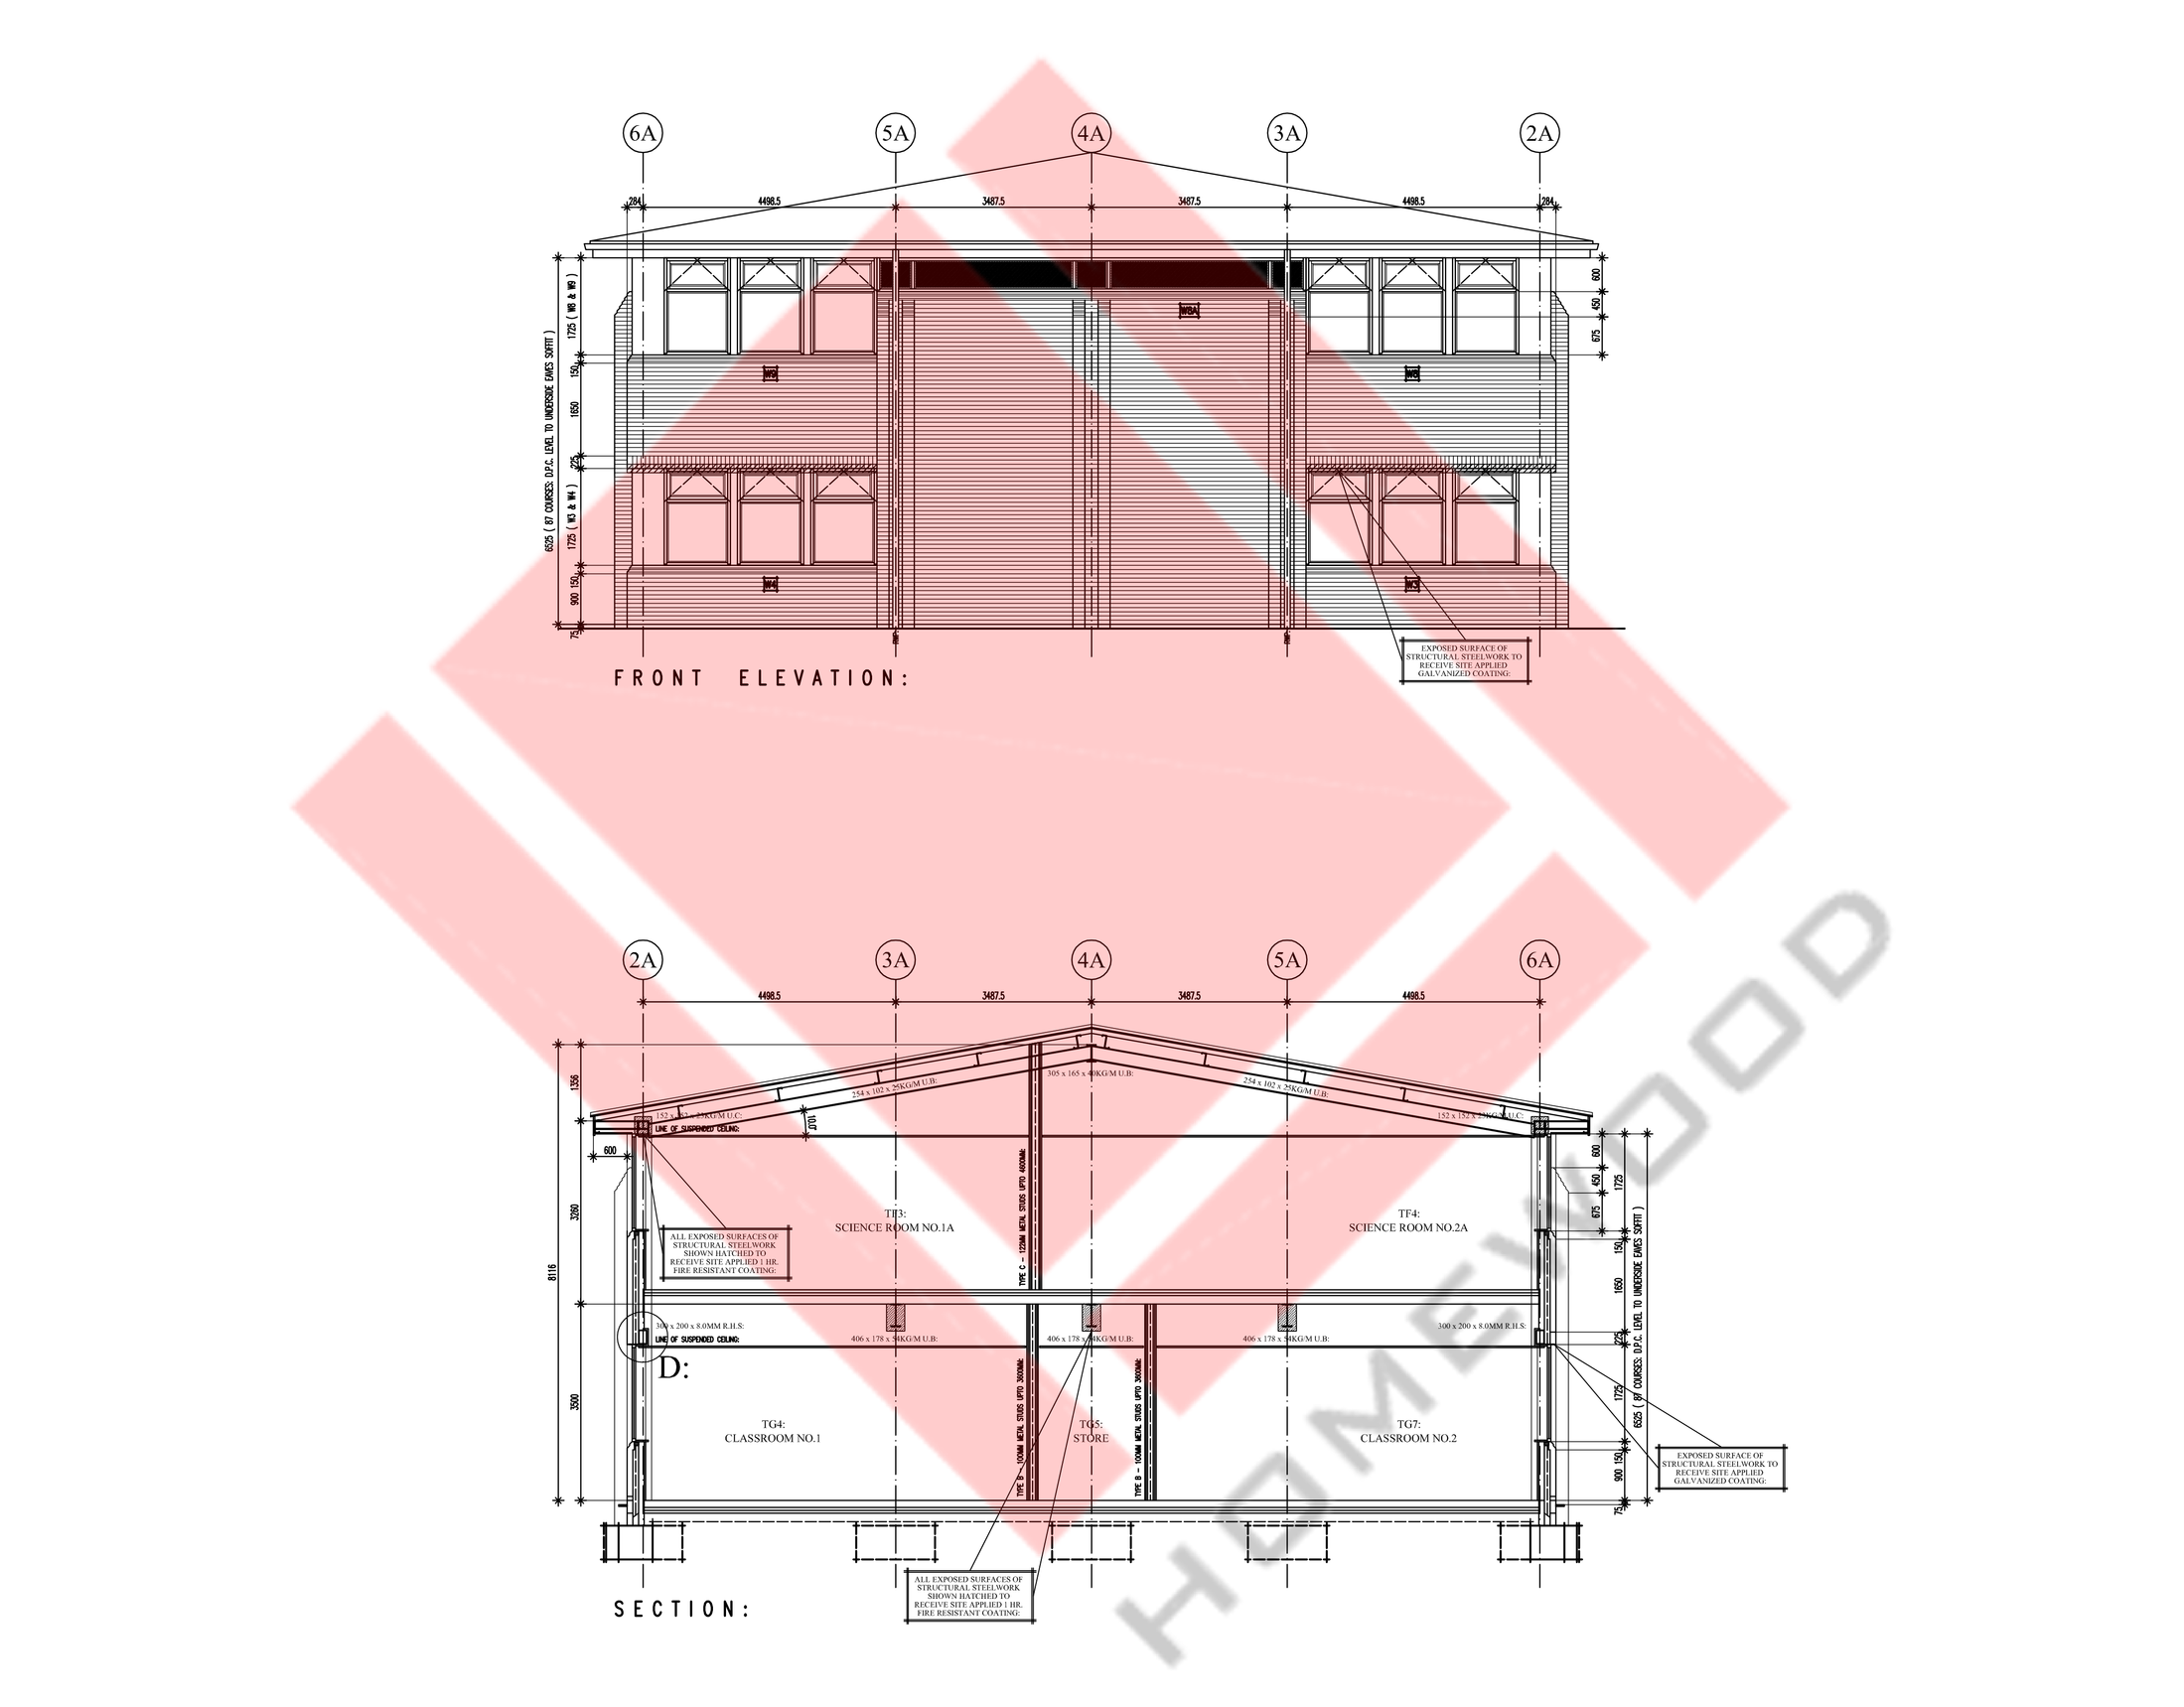 01 Elevation & Section.Image.Marked_1.png